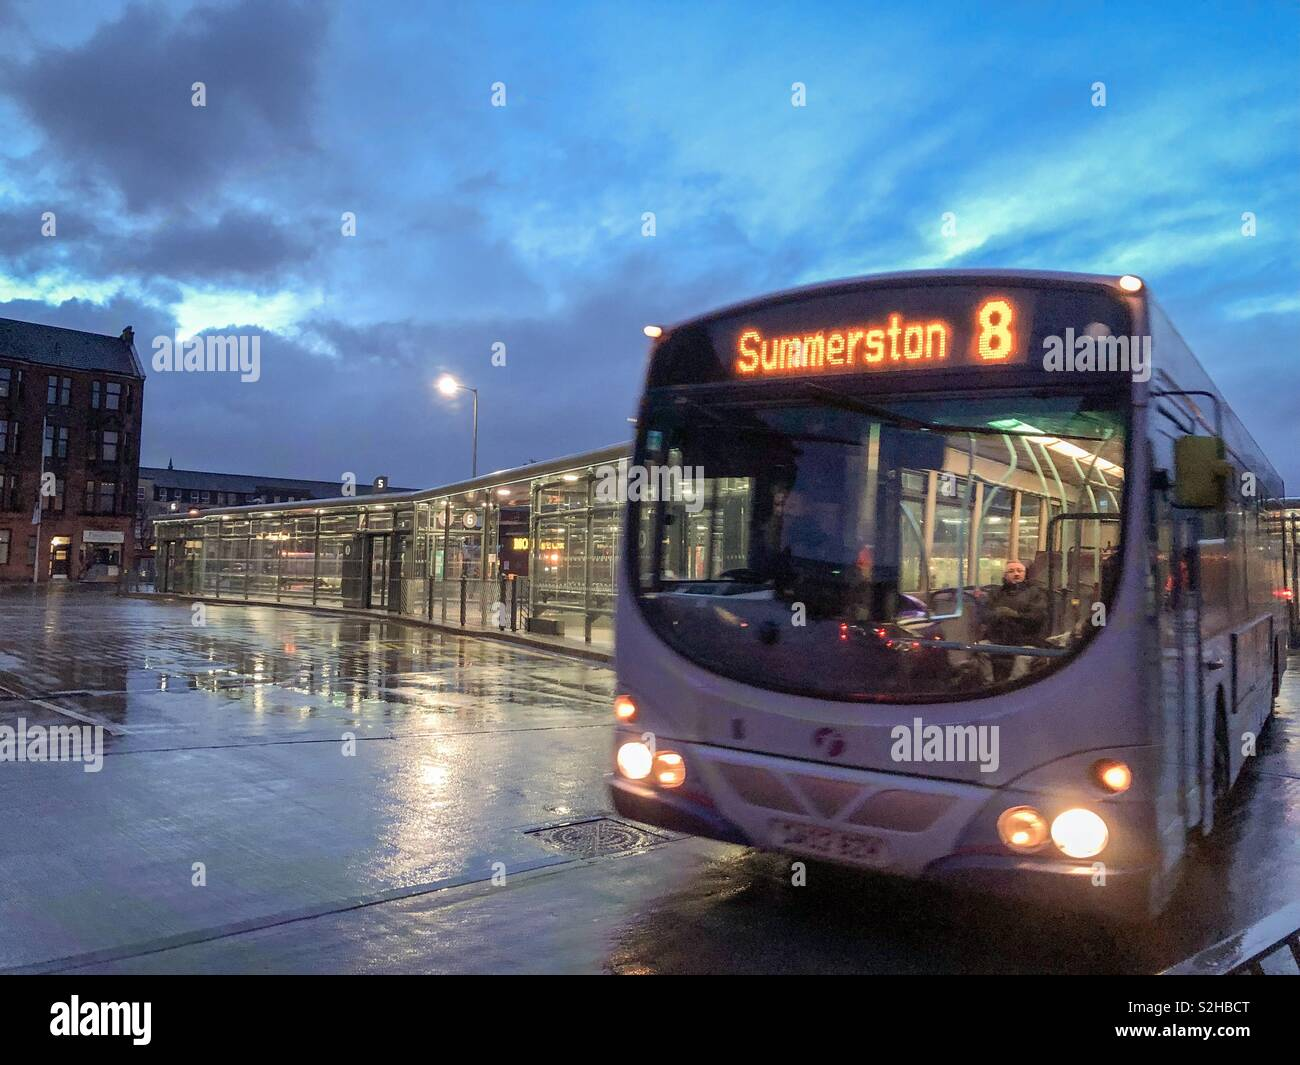 No. 8 to Summerston on a cold, wet morning, Partick, Glasgow. Scotland. UK. - Stock Image